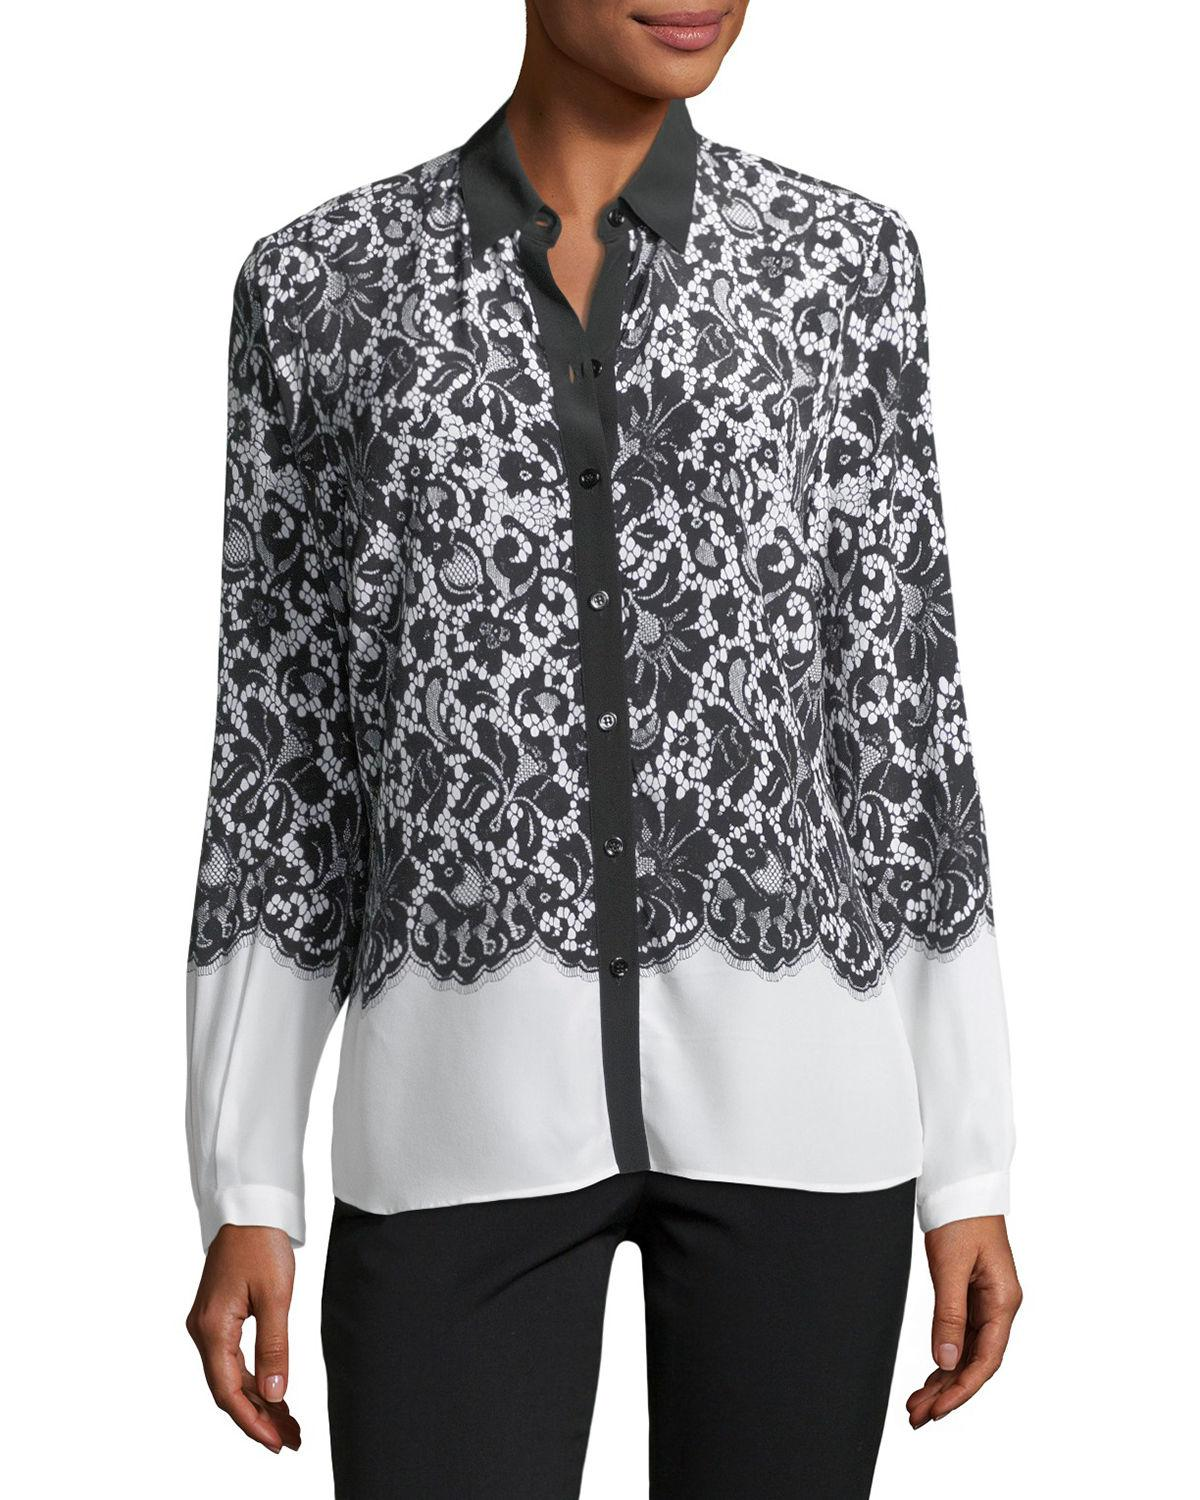 d34eb494b9663 Go Silk Blouse - Image Of Blouse and Pocket